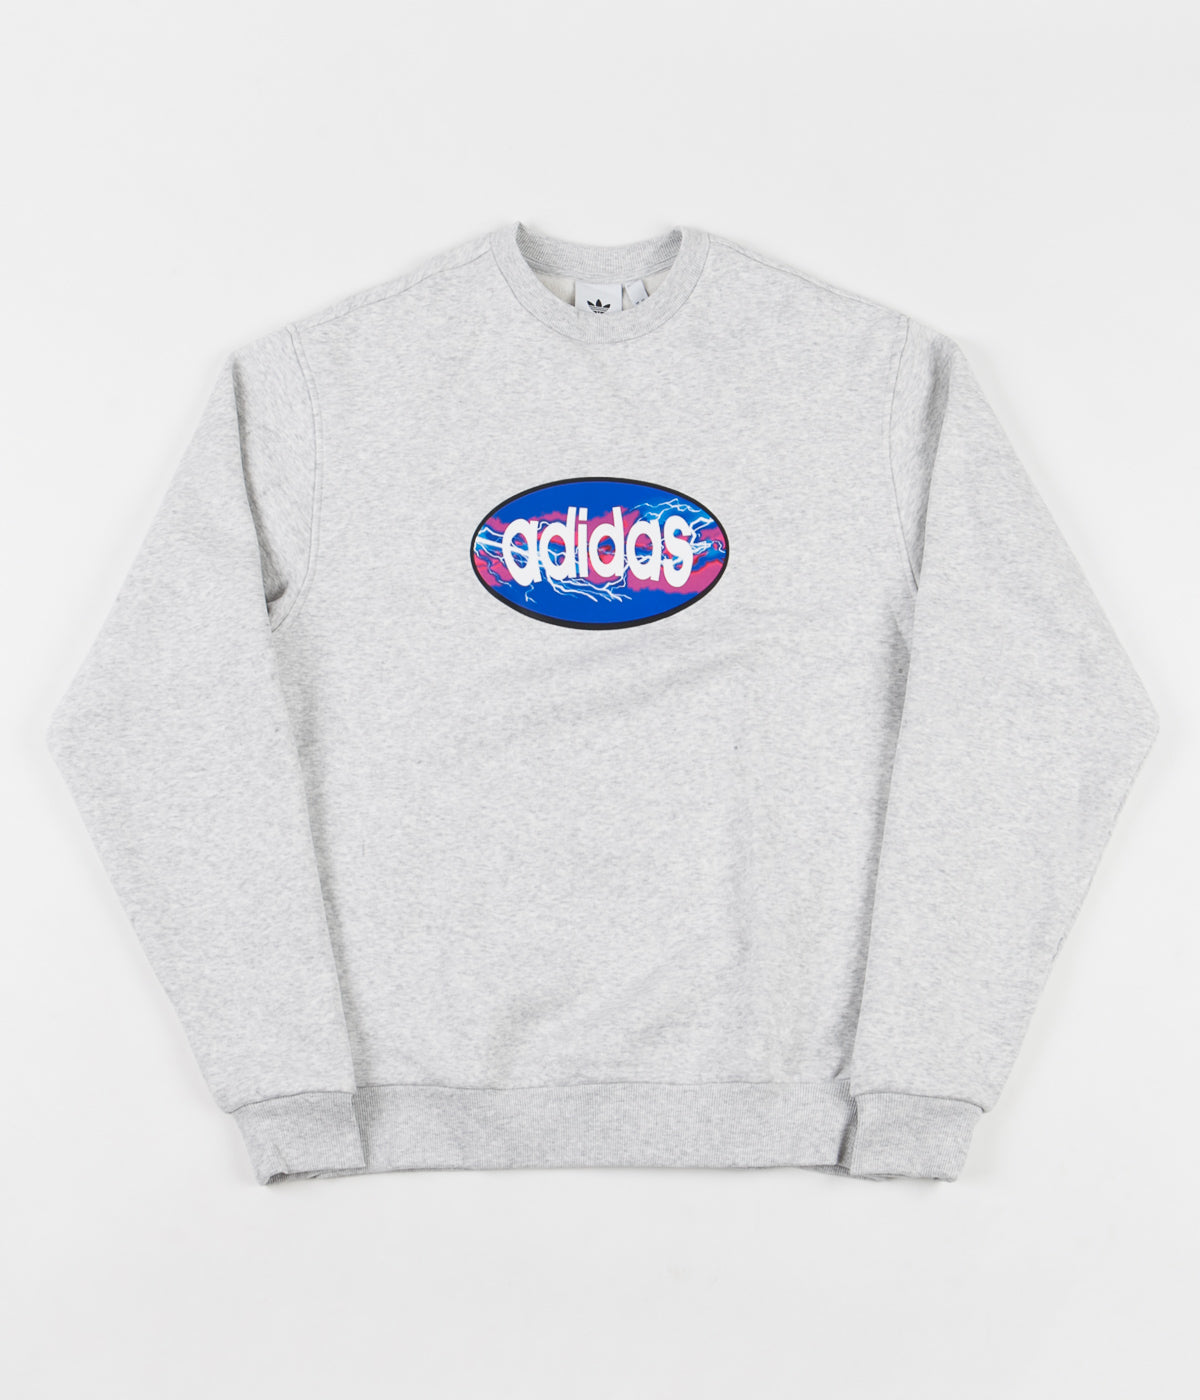 Adidas Oval Sweatshirt - Light Grey Heather